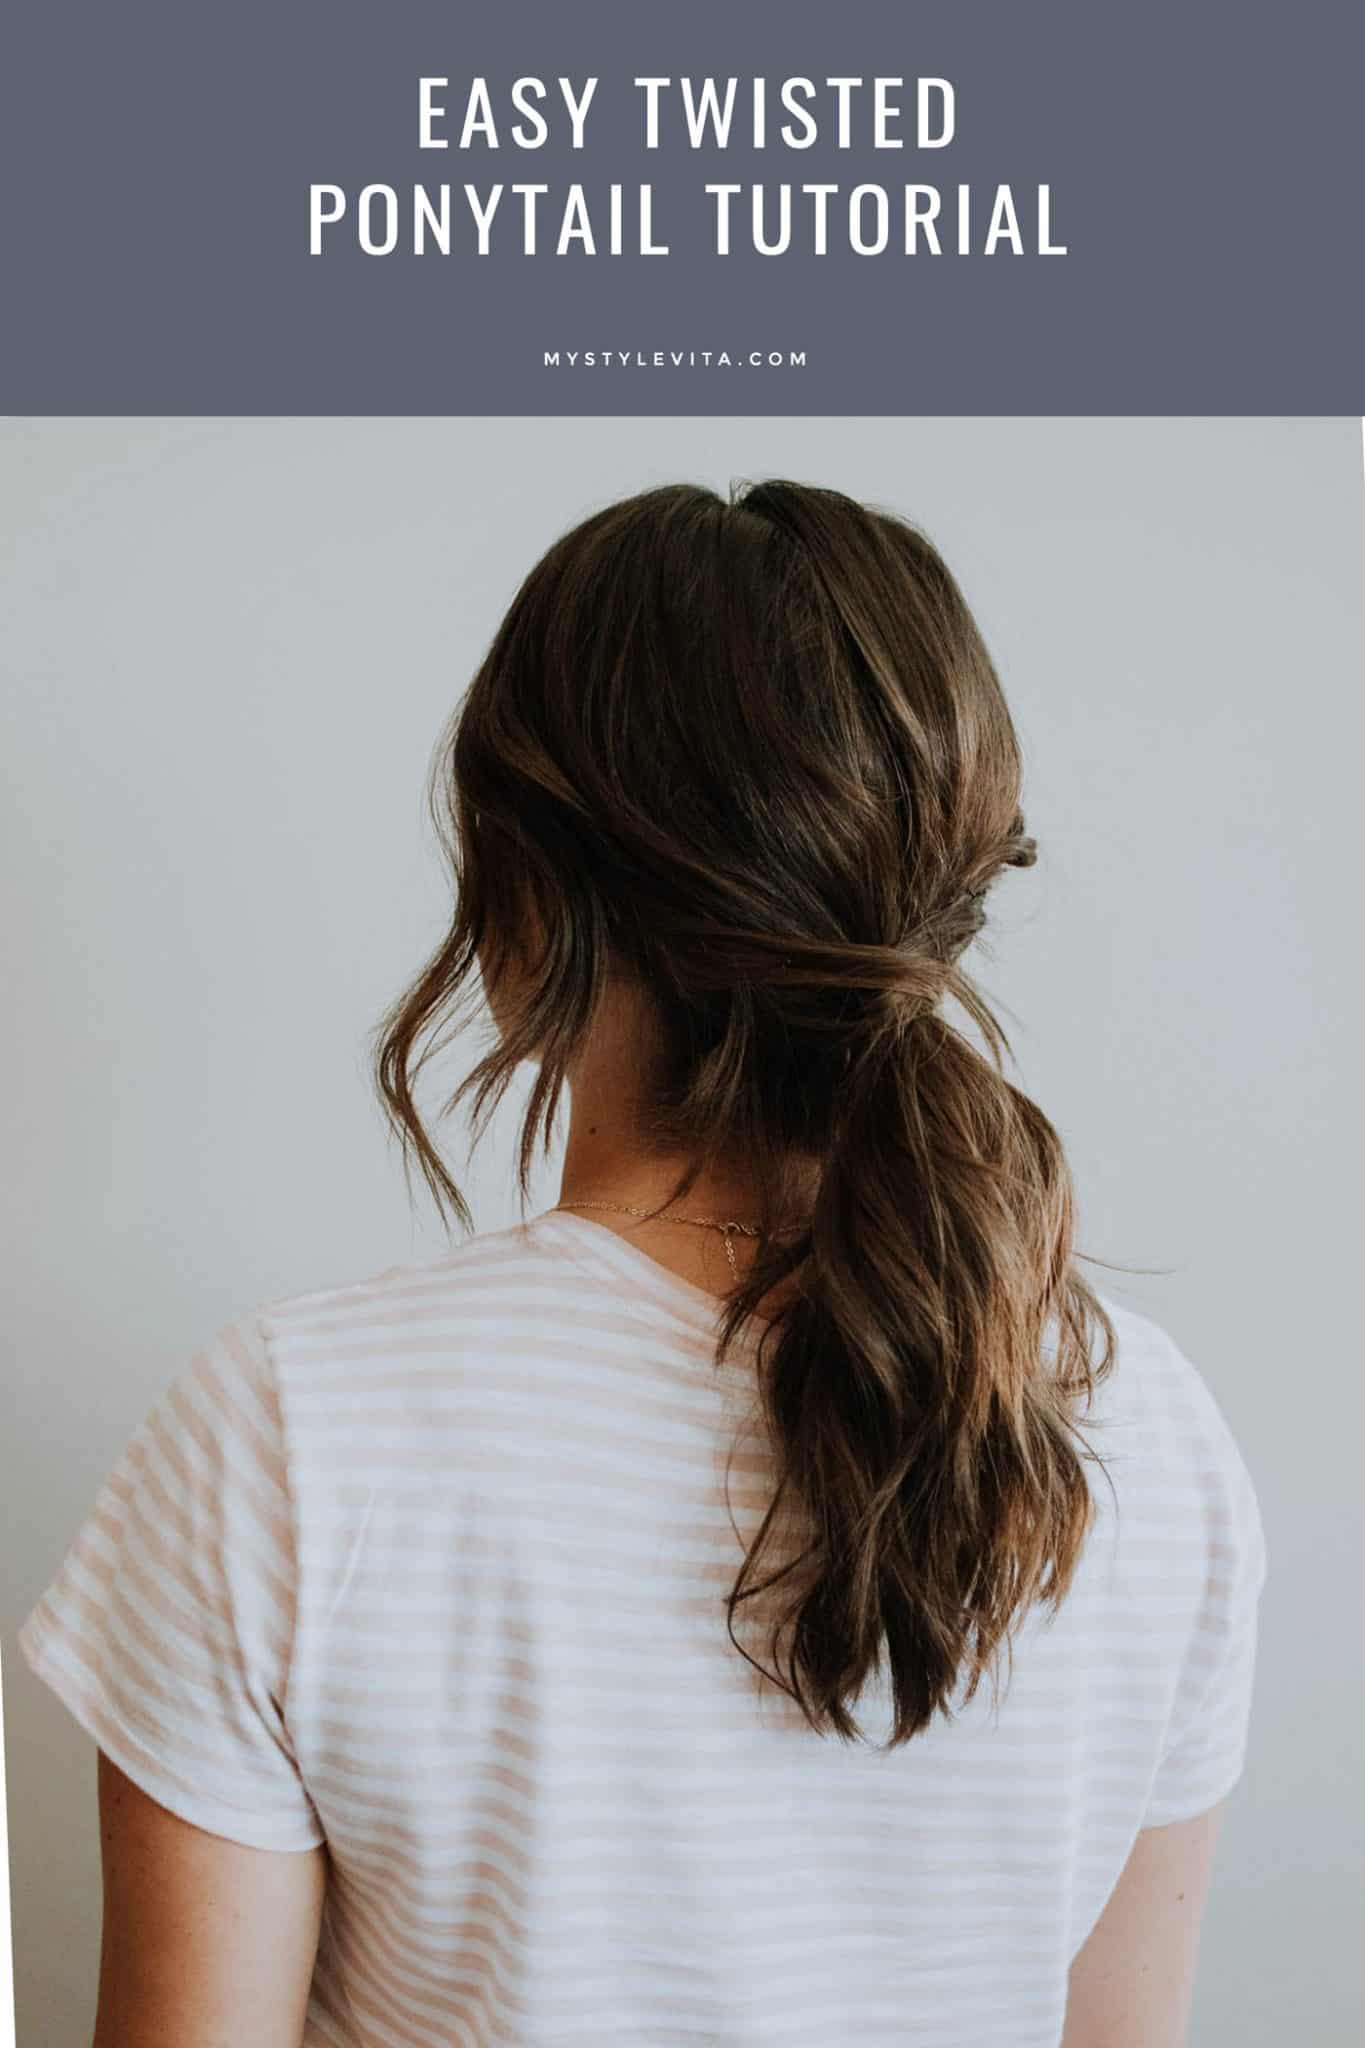 easy twisted ponytail tutorial, hair ideas for the office - My Style Vita